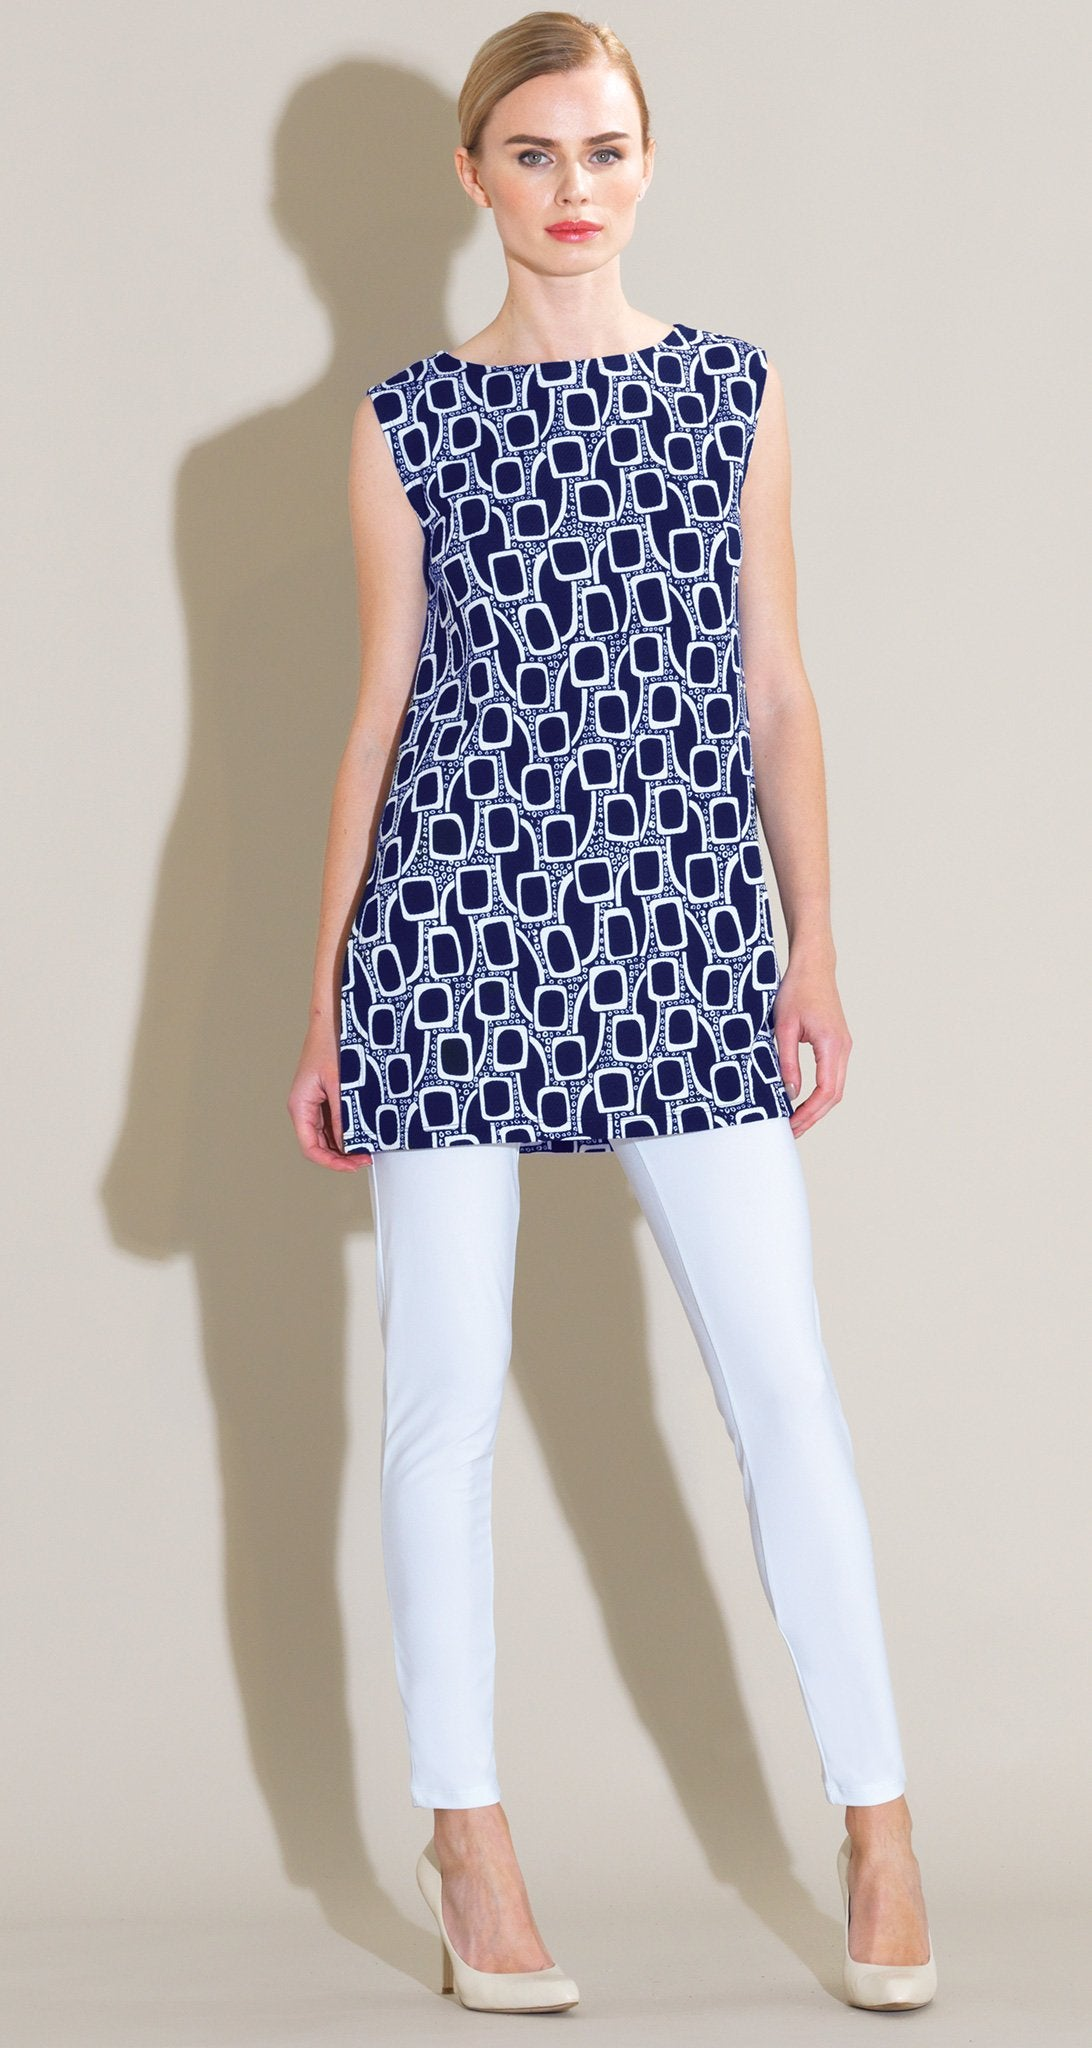 Mod Inspired Square Tunic Tank - Navy/White - Final Sale! - Clara Sunwoo